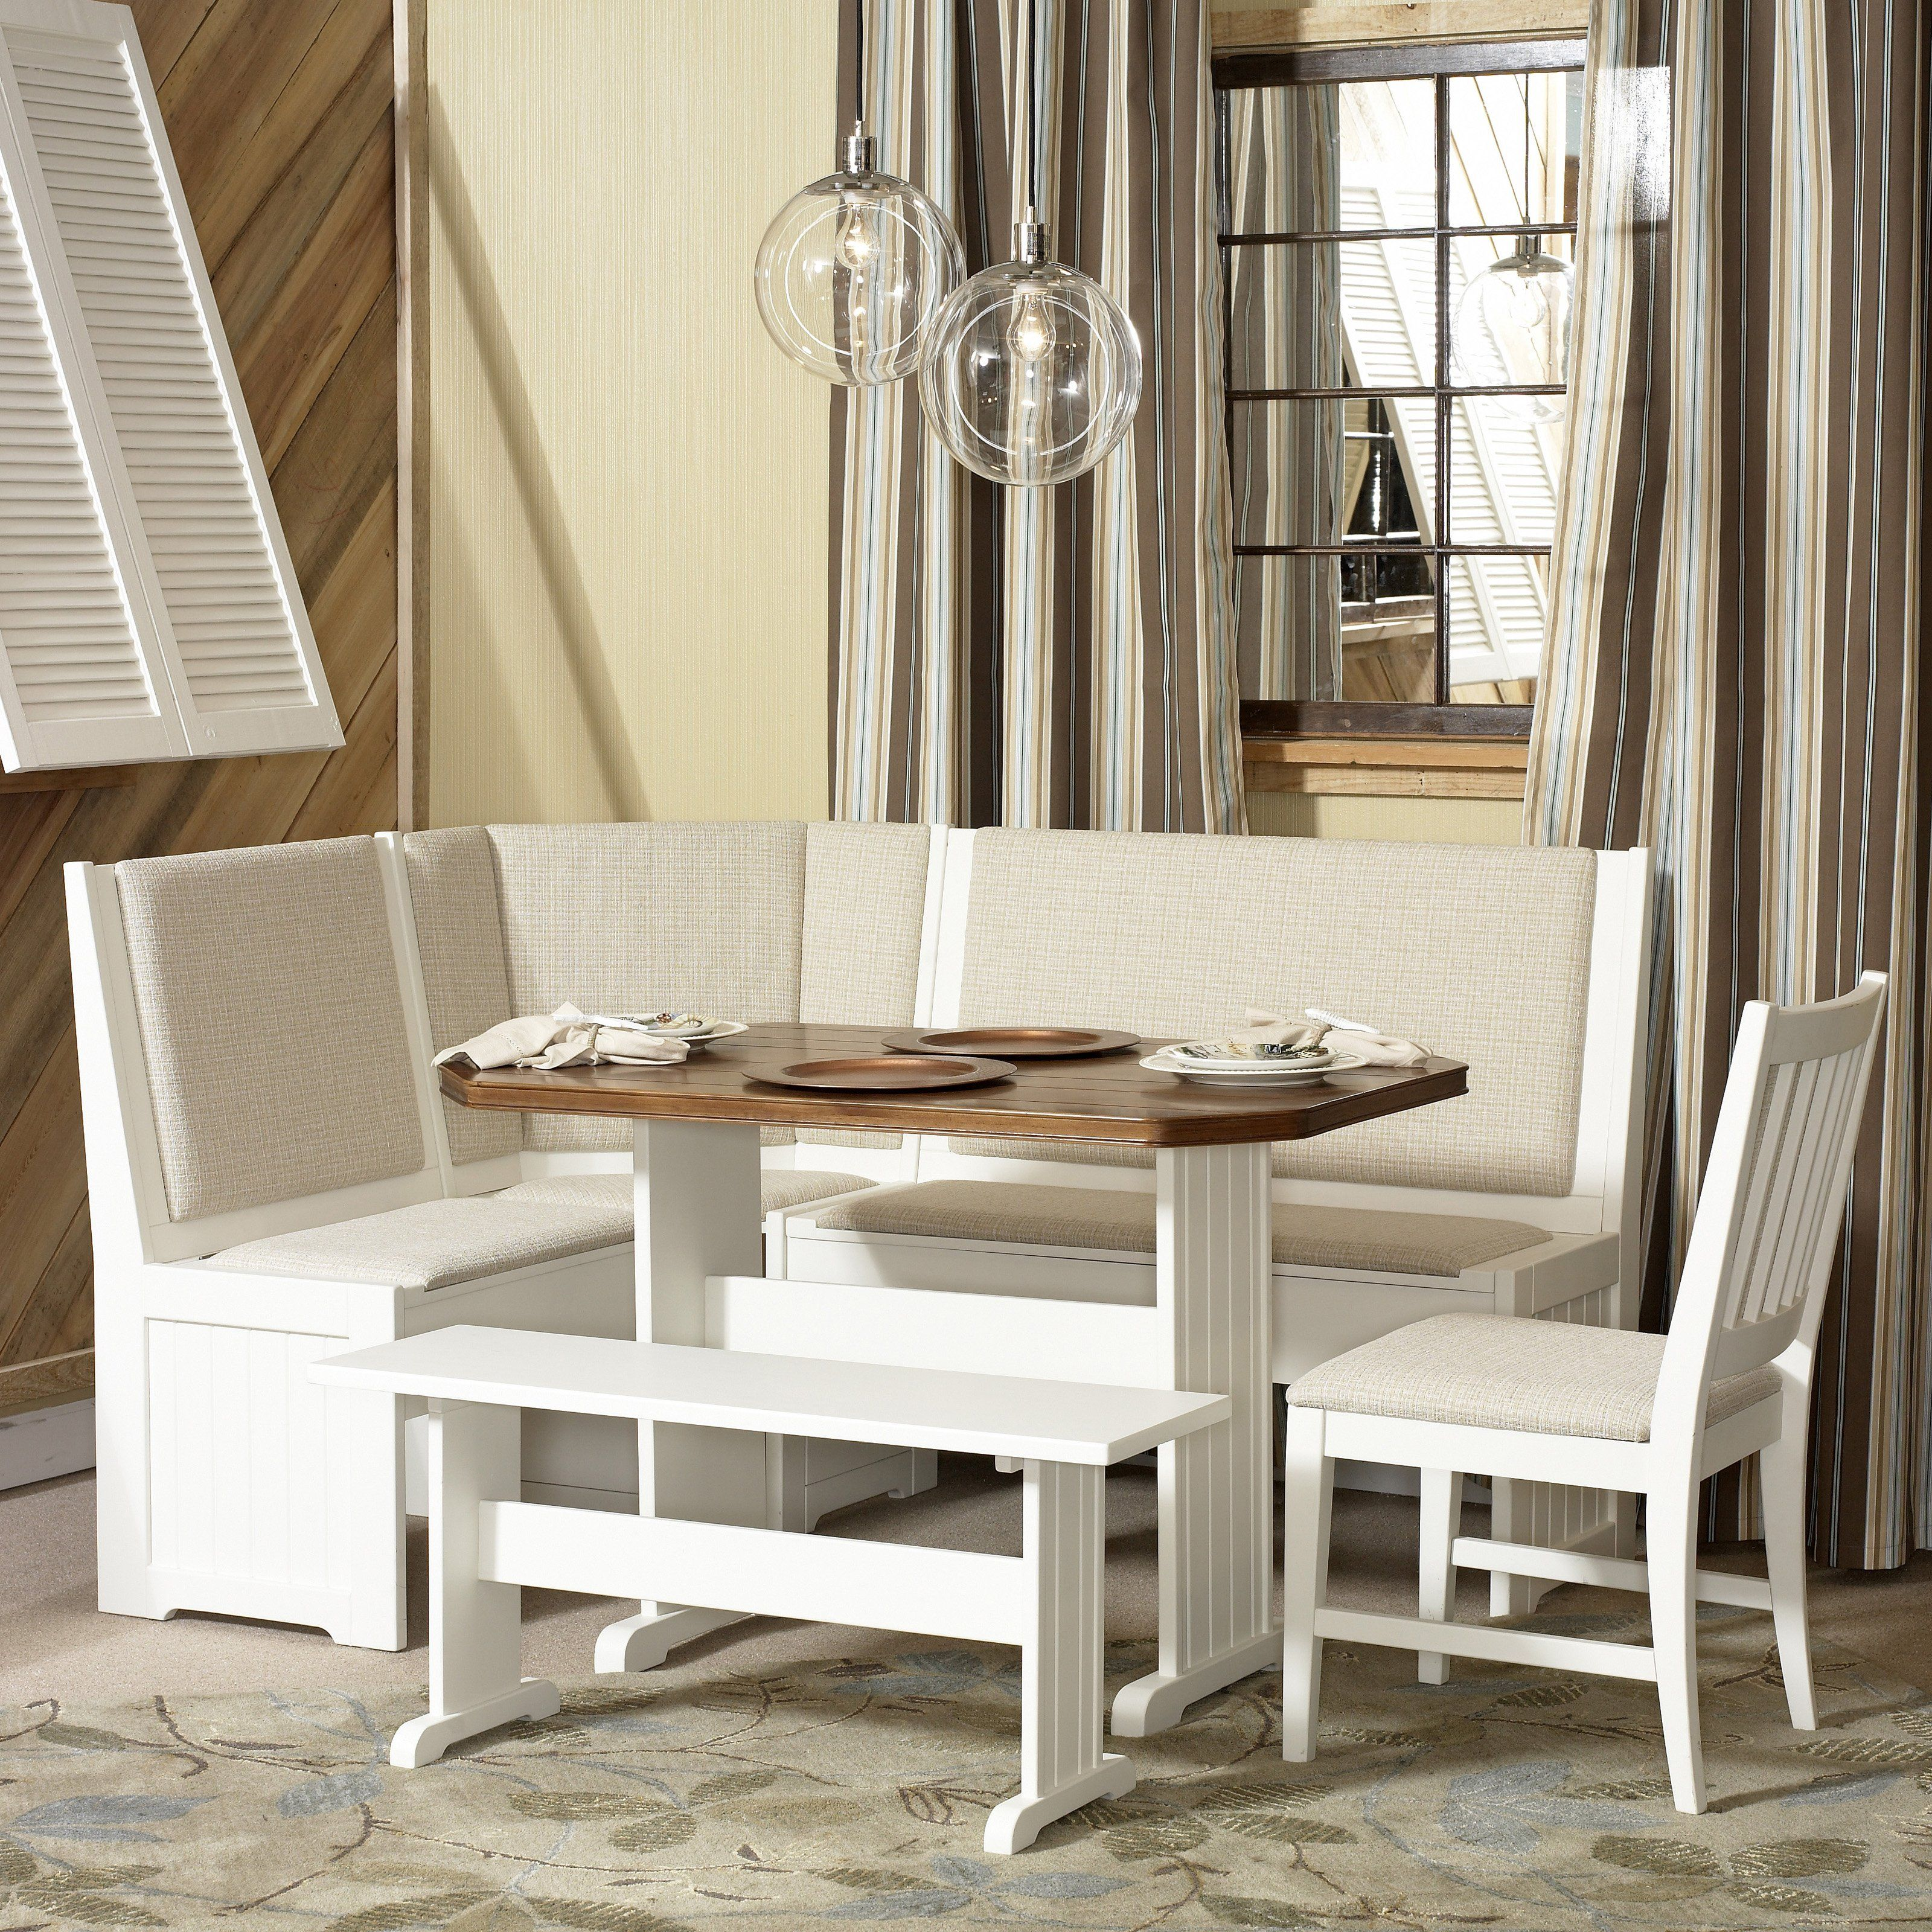 Store-bought breakfast nook: Powell Daisy Kitchen Nook Set $699.98 ...